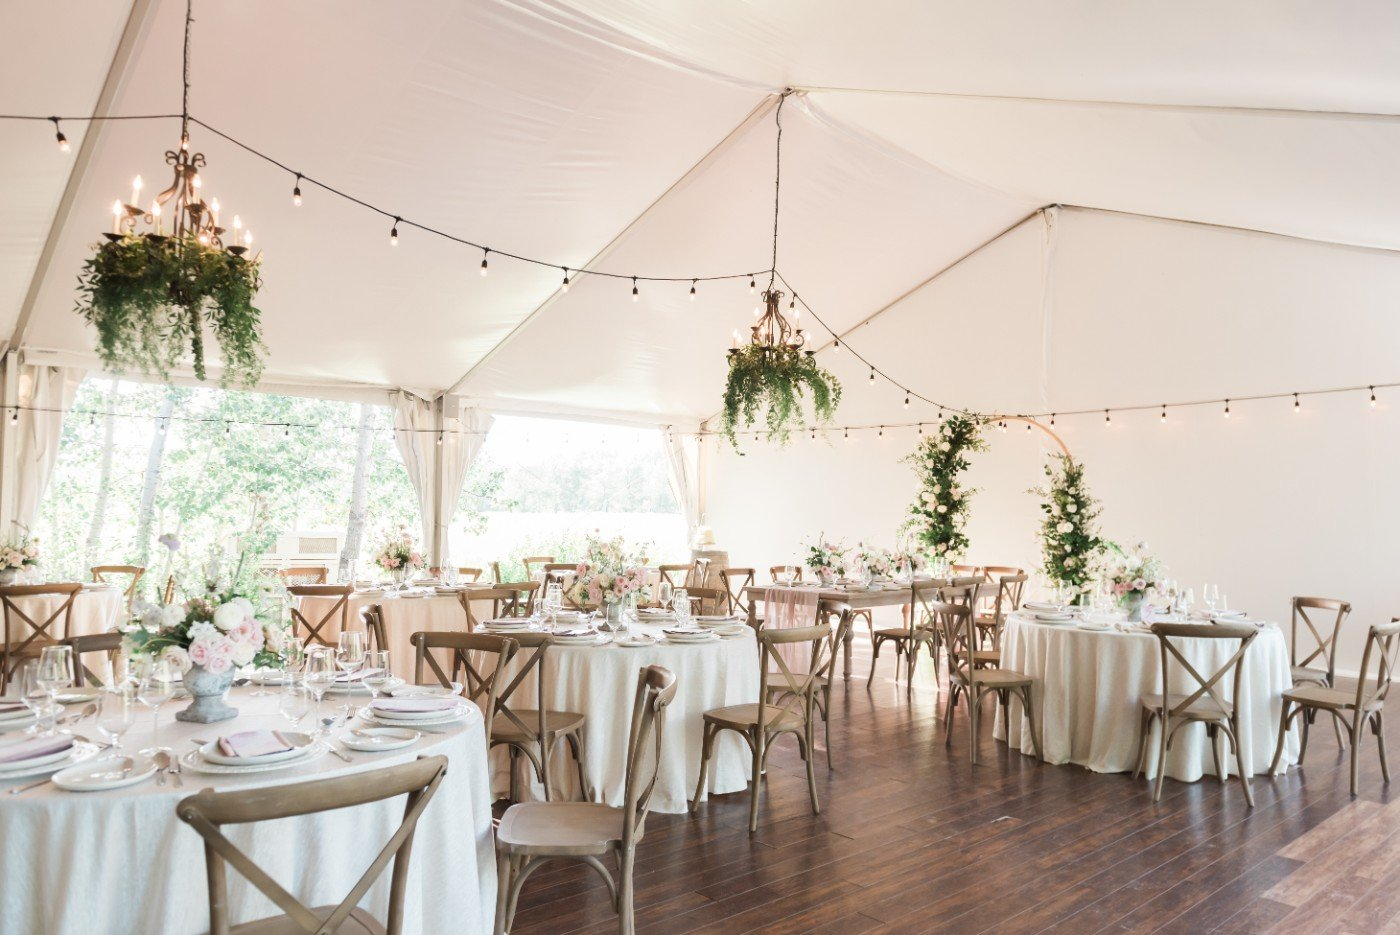 Save $1500 on a Meadow Muse Pavilion dreamy wedding